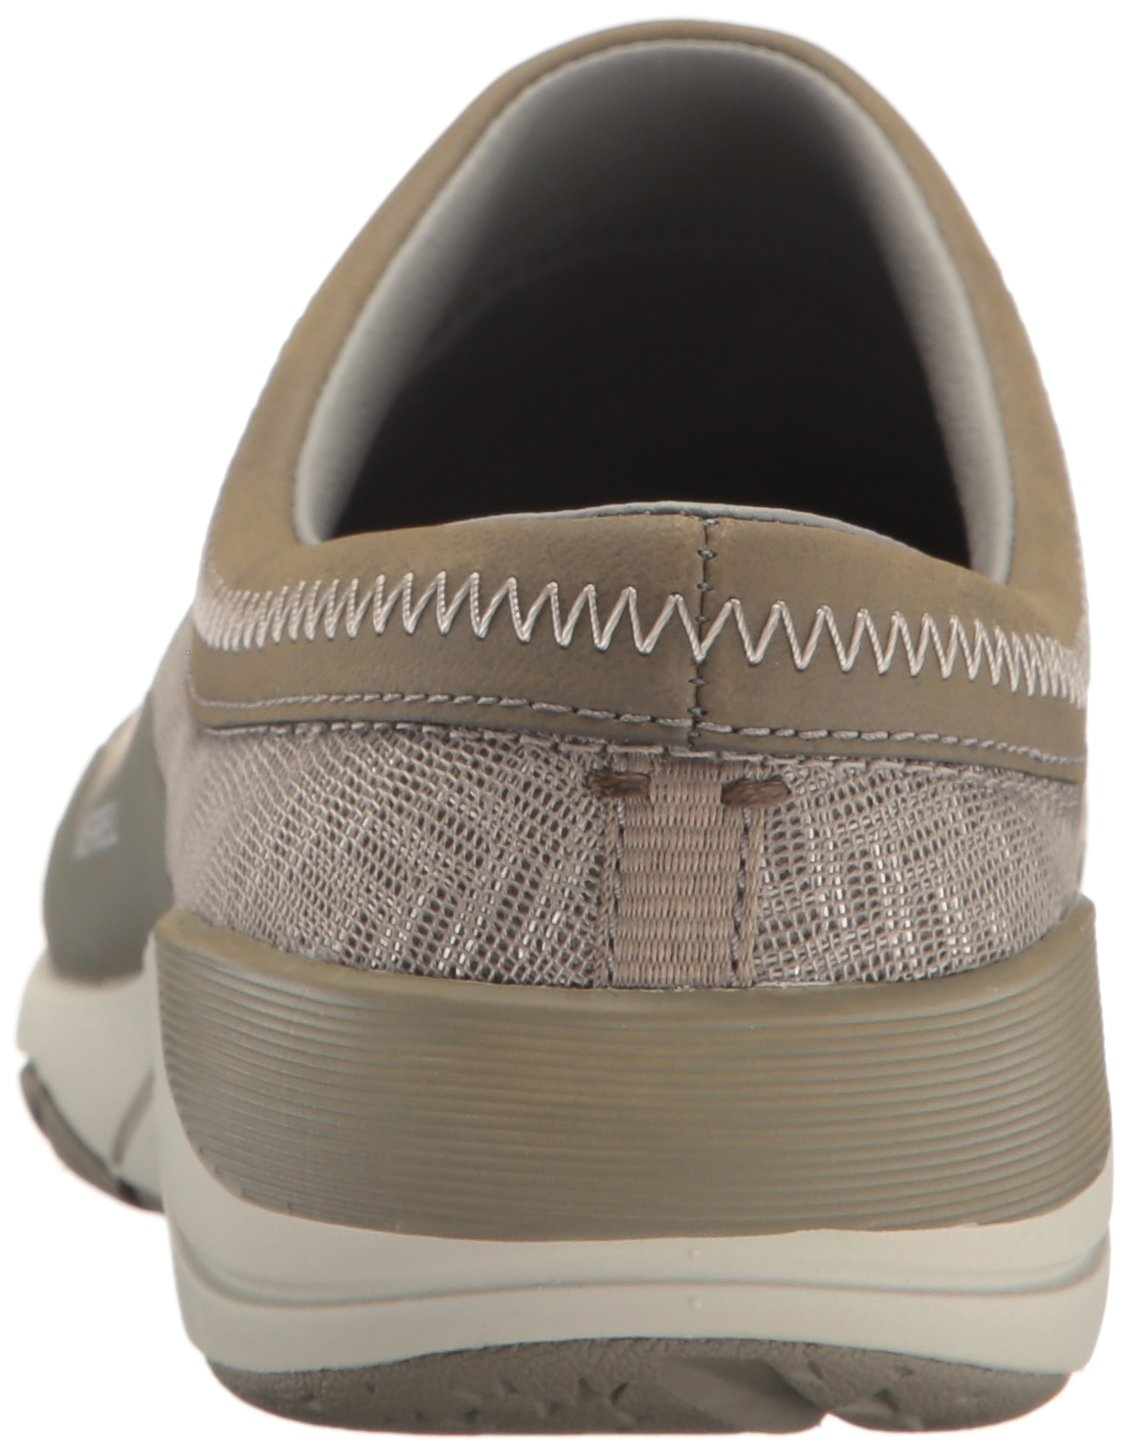 Merrell Women's B01HGW0VEY Applaud Mesh Slide Hiking Shoe B01HGW0VEY Women's 9.5 B(M) US|Taupe 0f5dd1